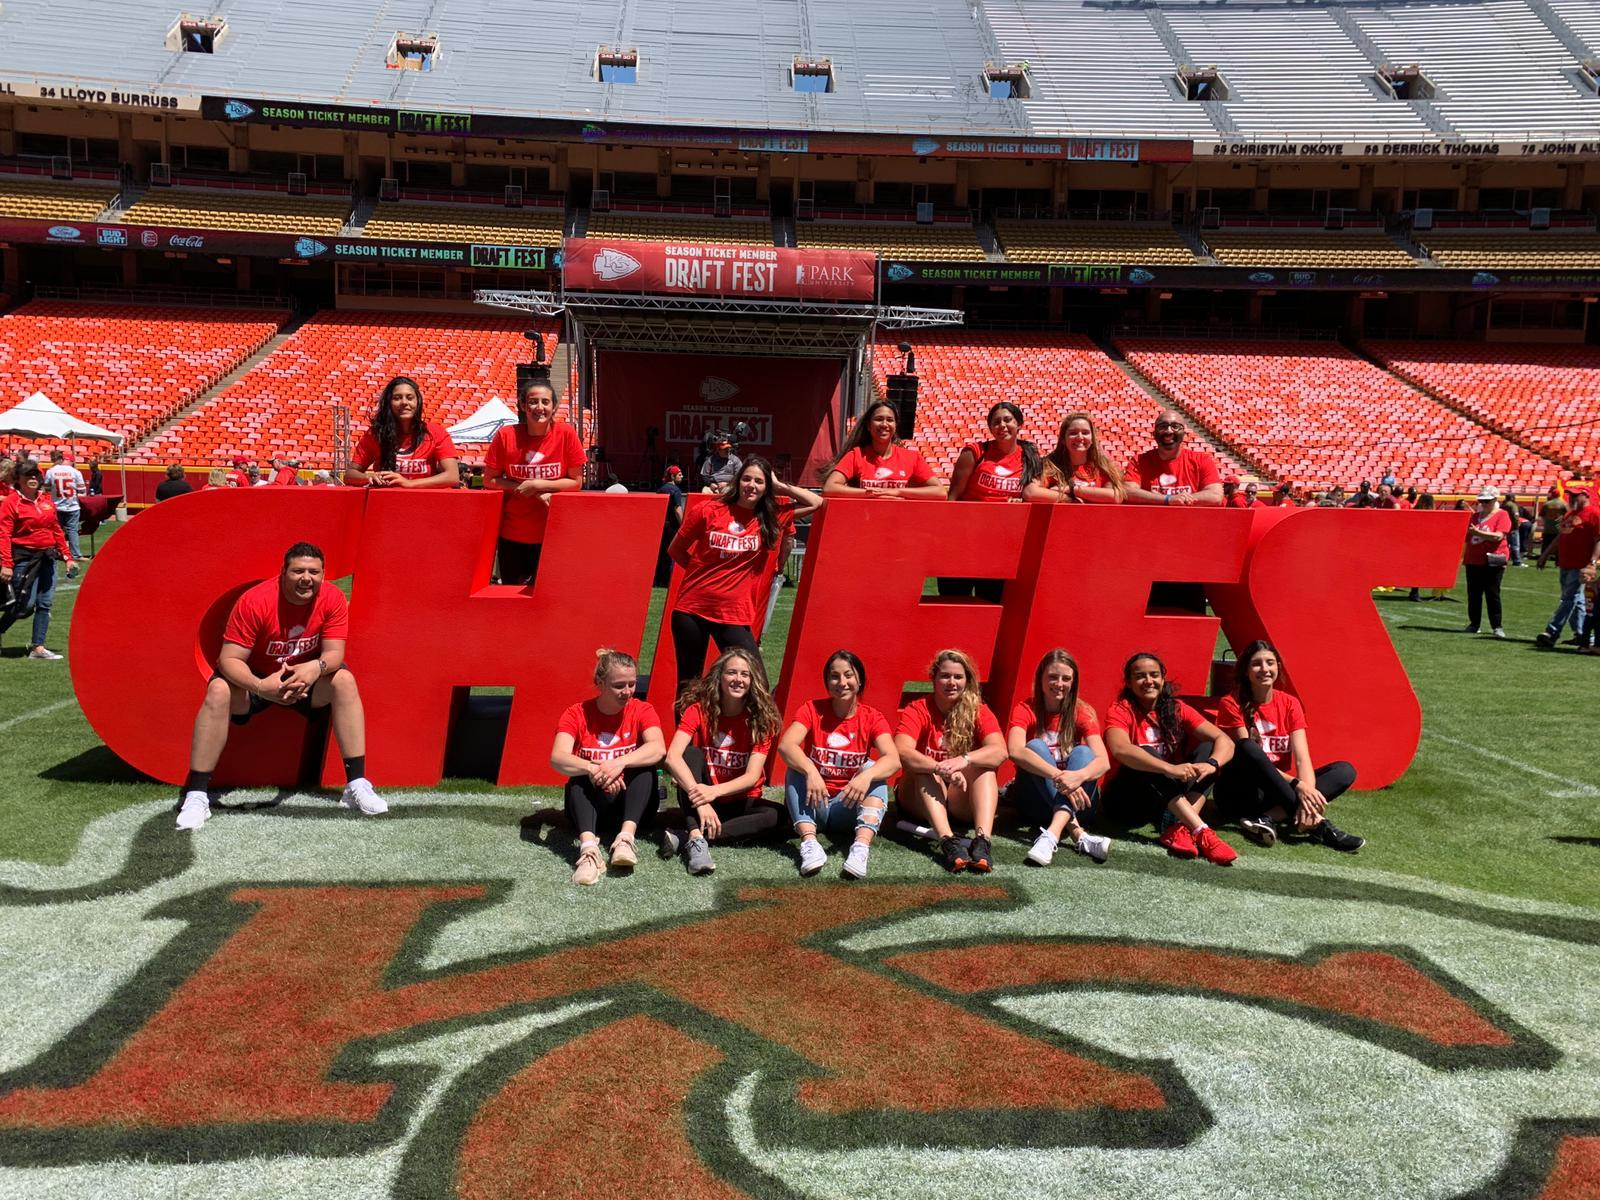 Submitted photo The Park volleyball team and coaching staff posed for a photo during the Kansas City Chiefs second annual draft fest, which was sponsored by Park University on Saturday, April 27 at Arrowhead Stadium.